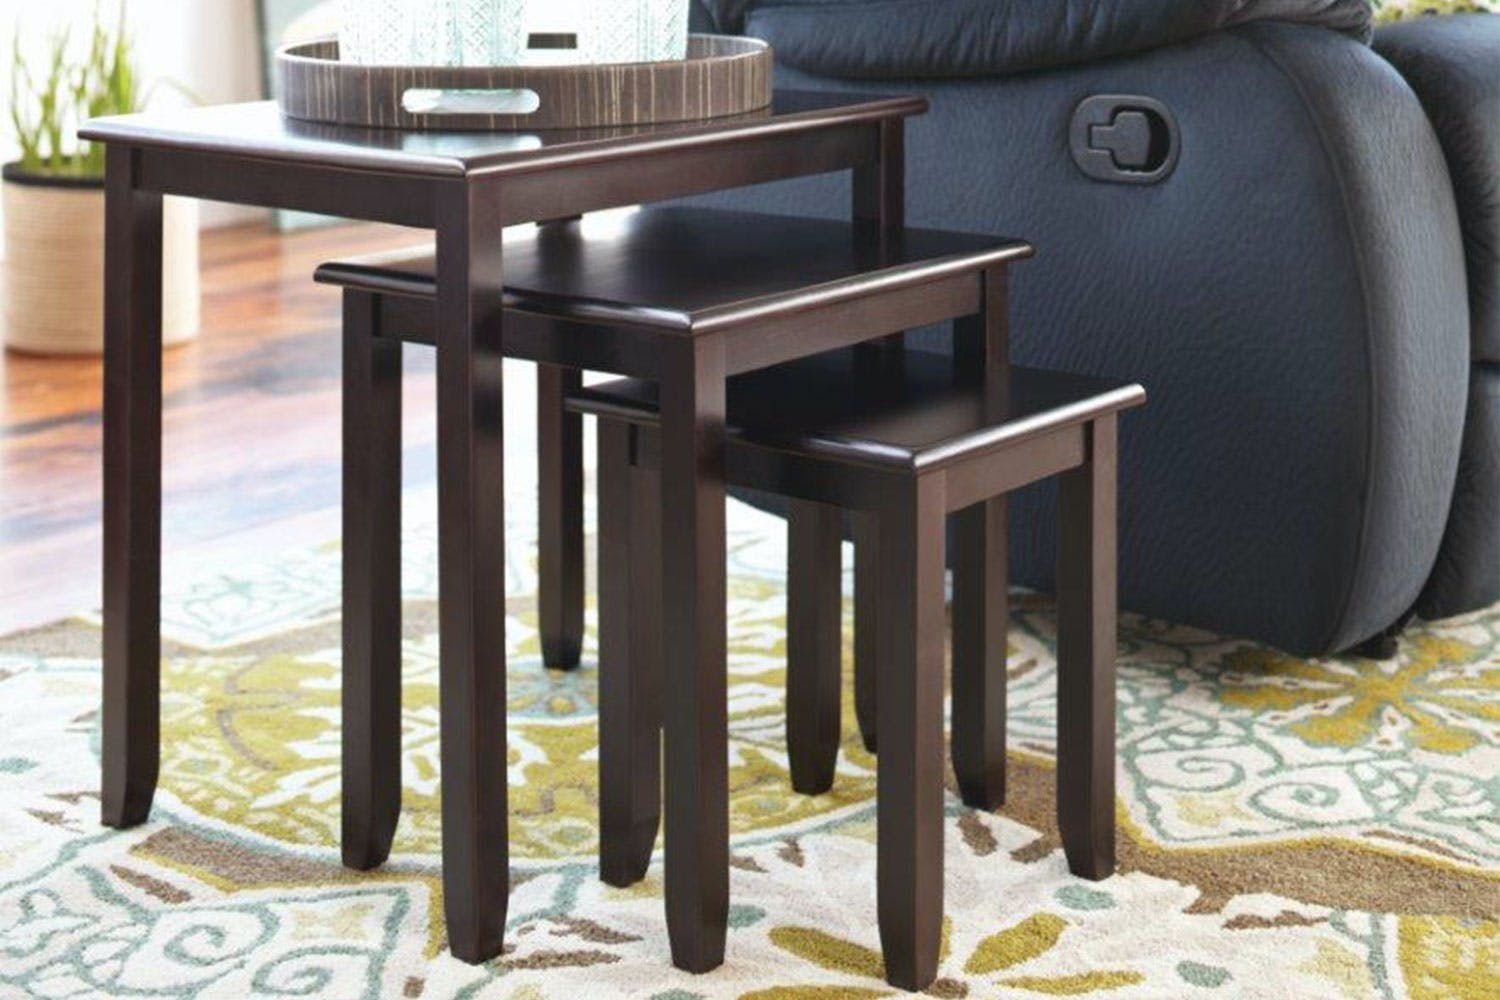 Robins nest of 3 tables by nero furniture harvey norman new zealand wenge robins nest of 3 tables by nero furniture watchthetrailerfo